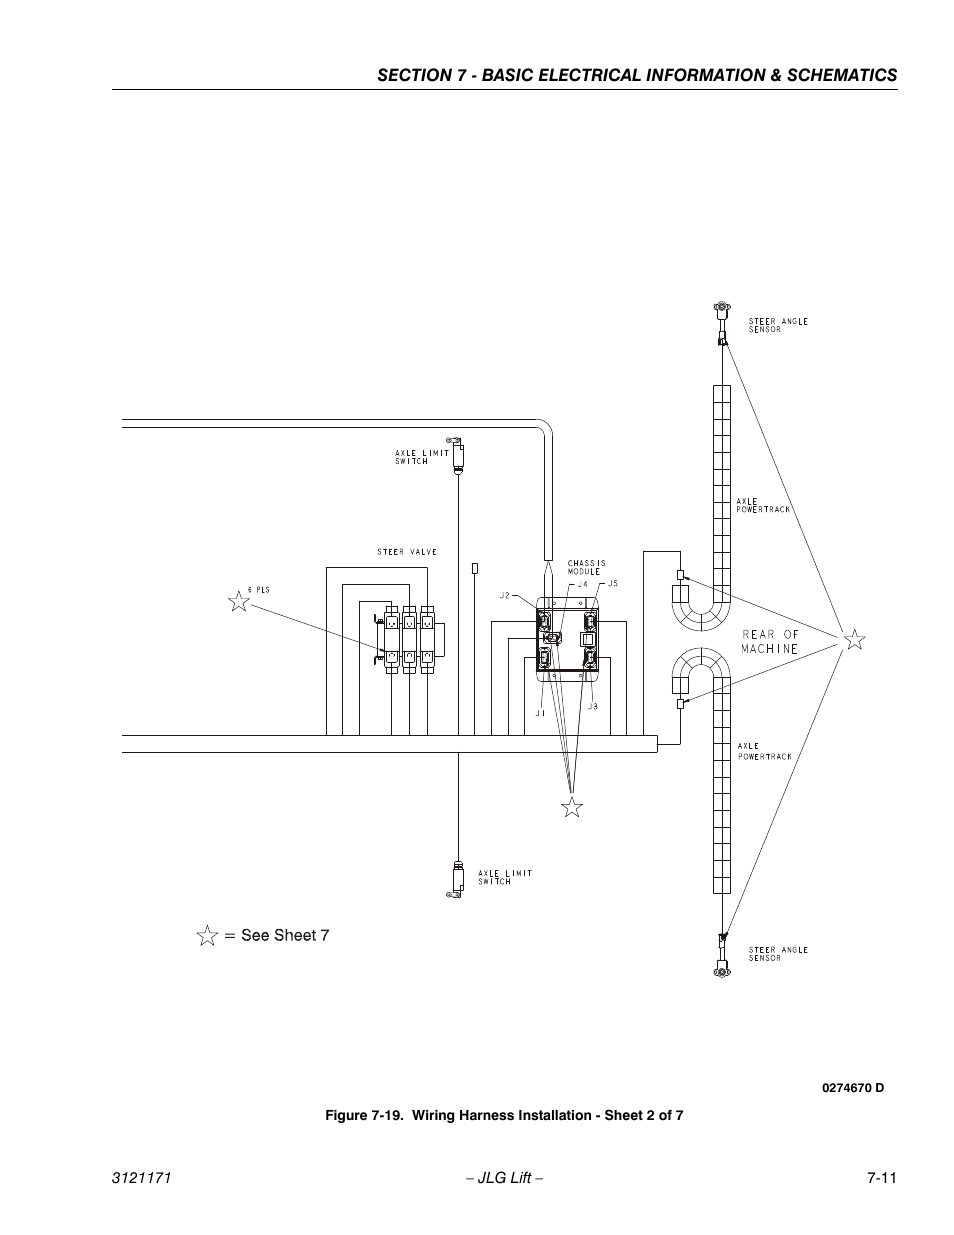 Wiring harness installation - sheet 2 of 7 -11 | JLG 1250AJP Service Manual  User Manual | Page 571 / 606